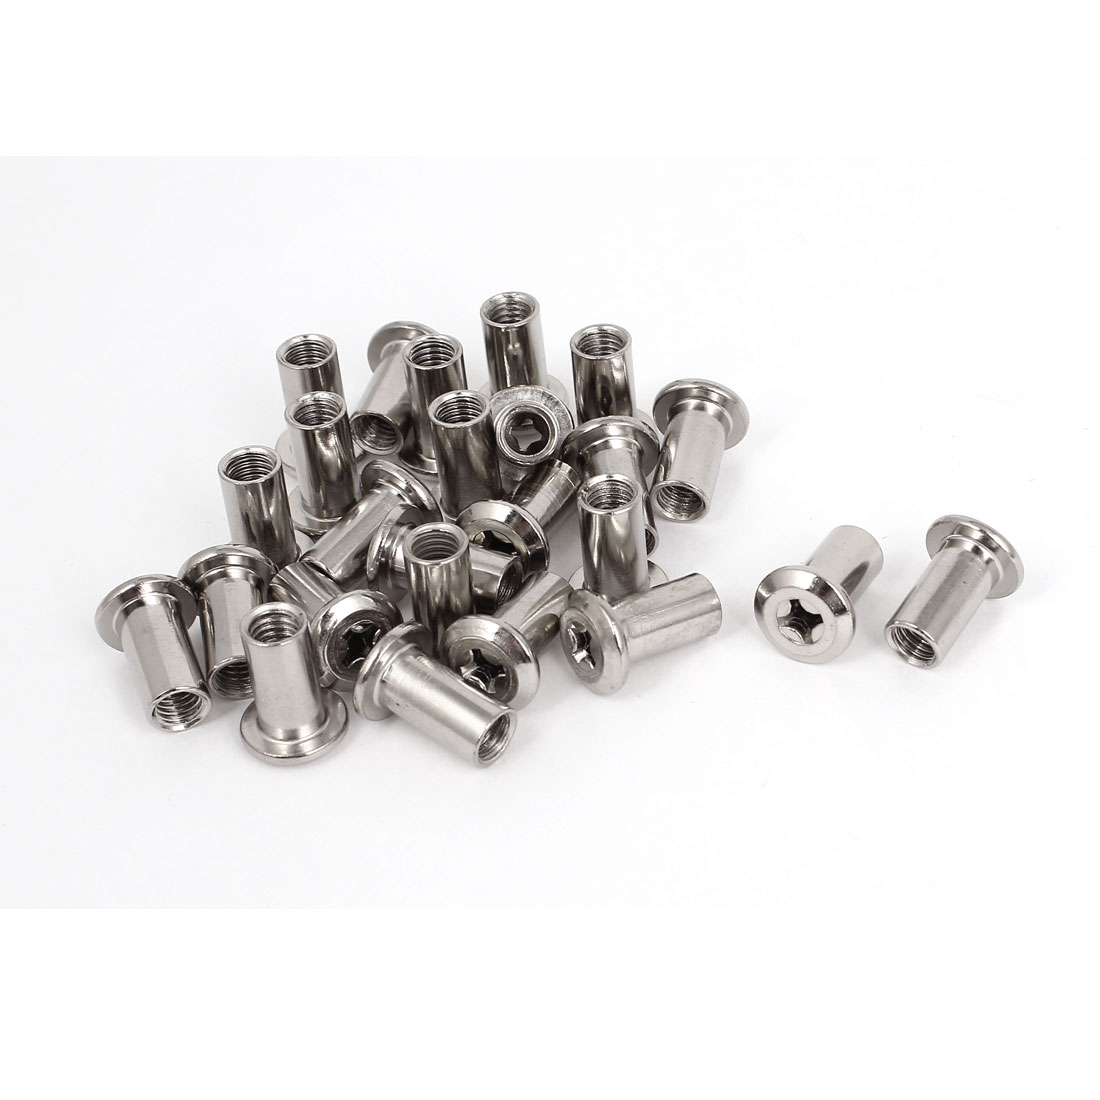 25 Pcs M6x17mm Rivet Phillips Head Socket Dowel Barrel Nuts Furniture Fittings